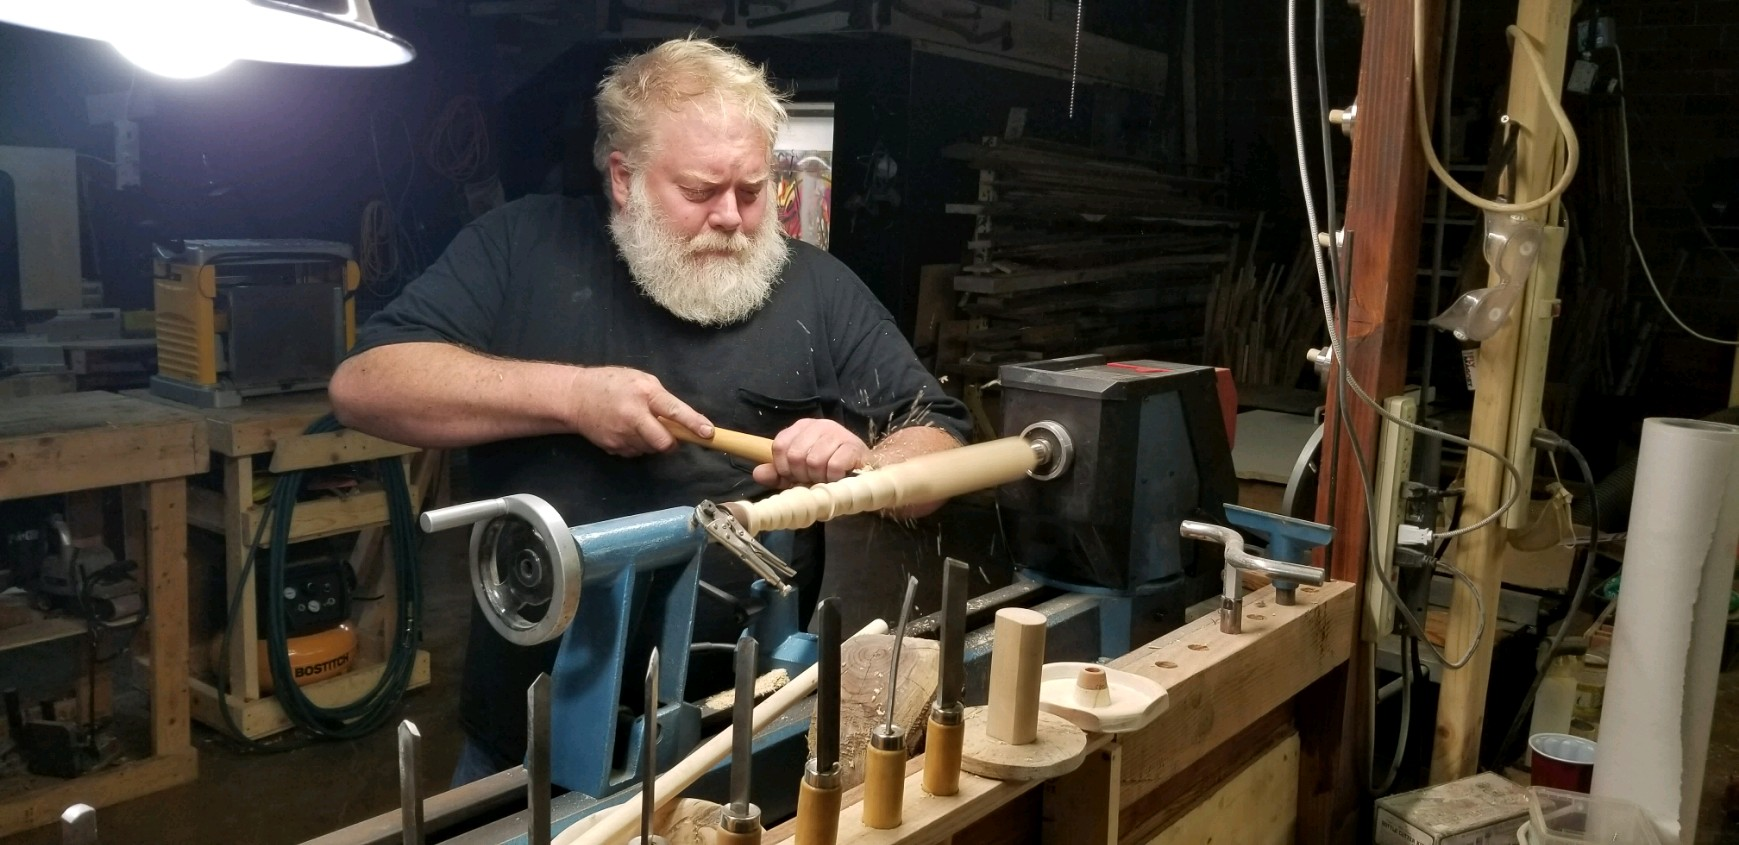 Don Darling - Tinkerer, Lathe Master